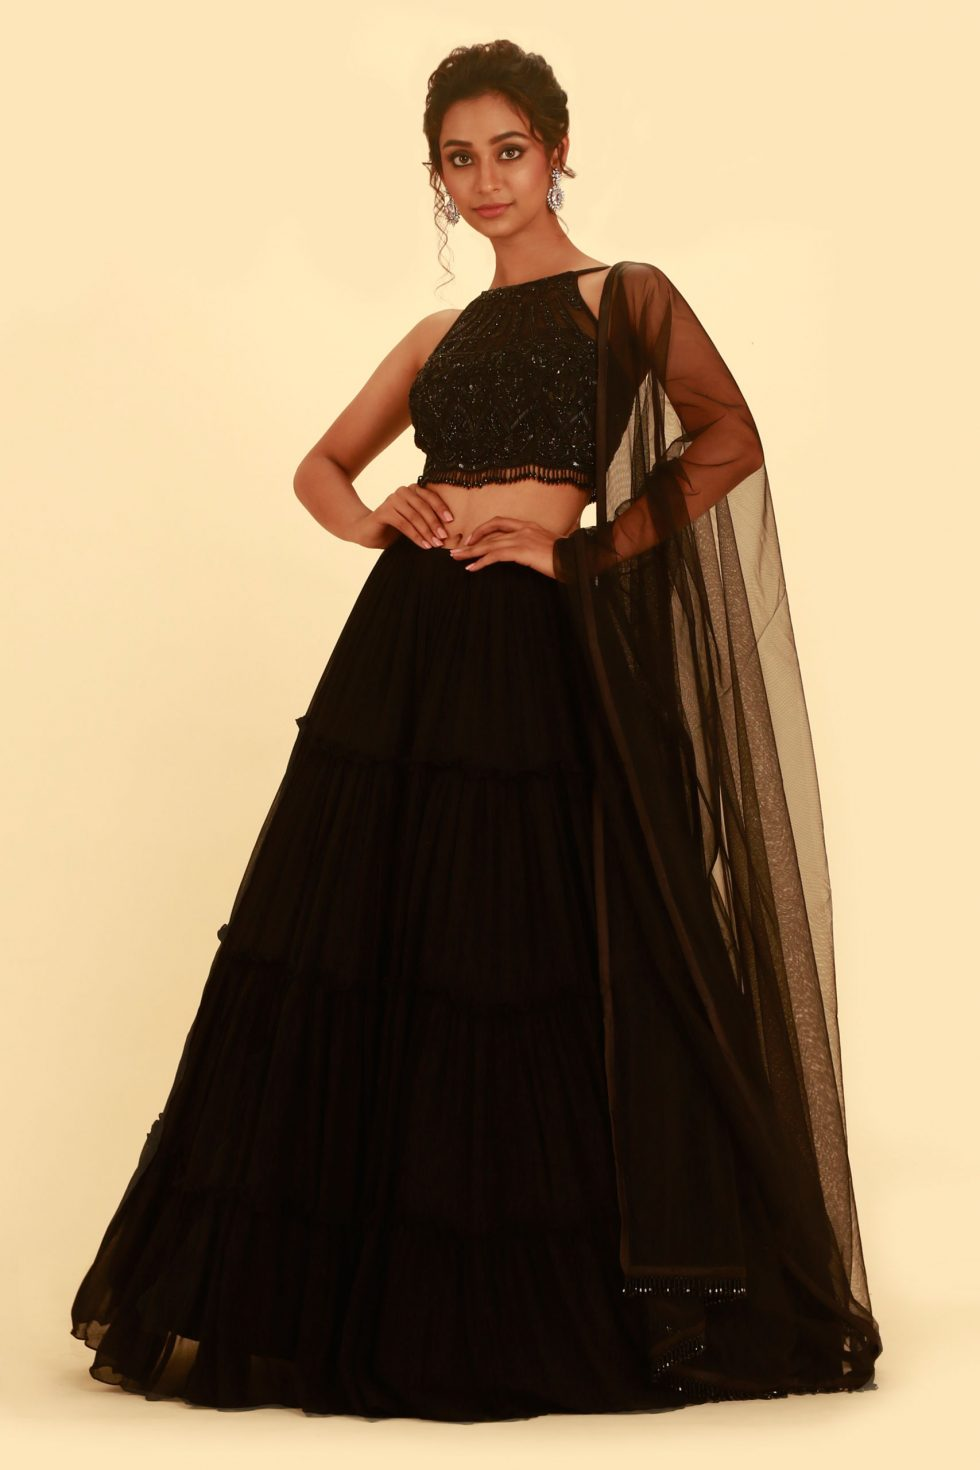 Jet Black Lehenga Set with Tiered Skirt and Zardozi Embroidered Choli with Tassels